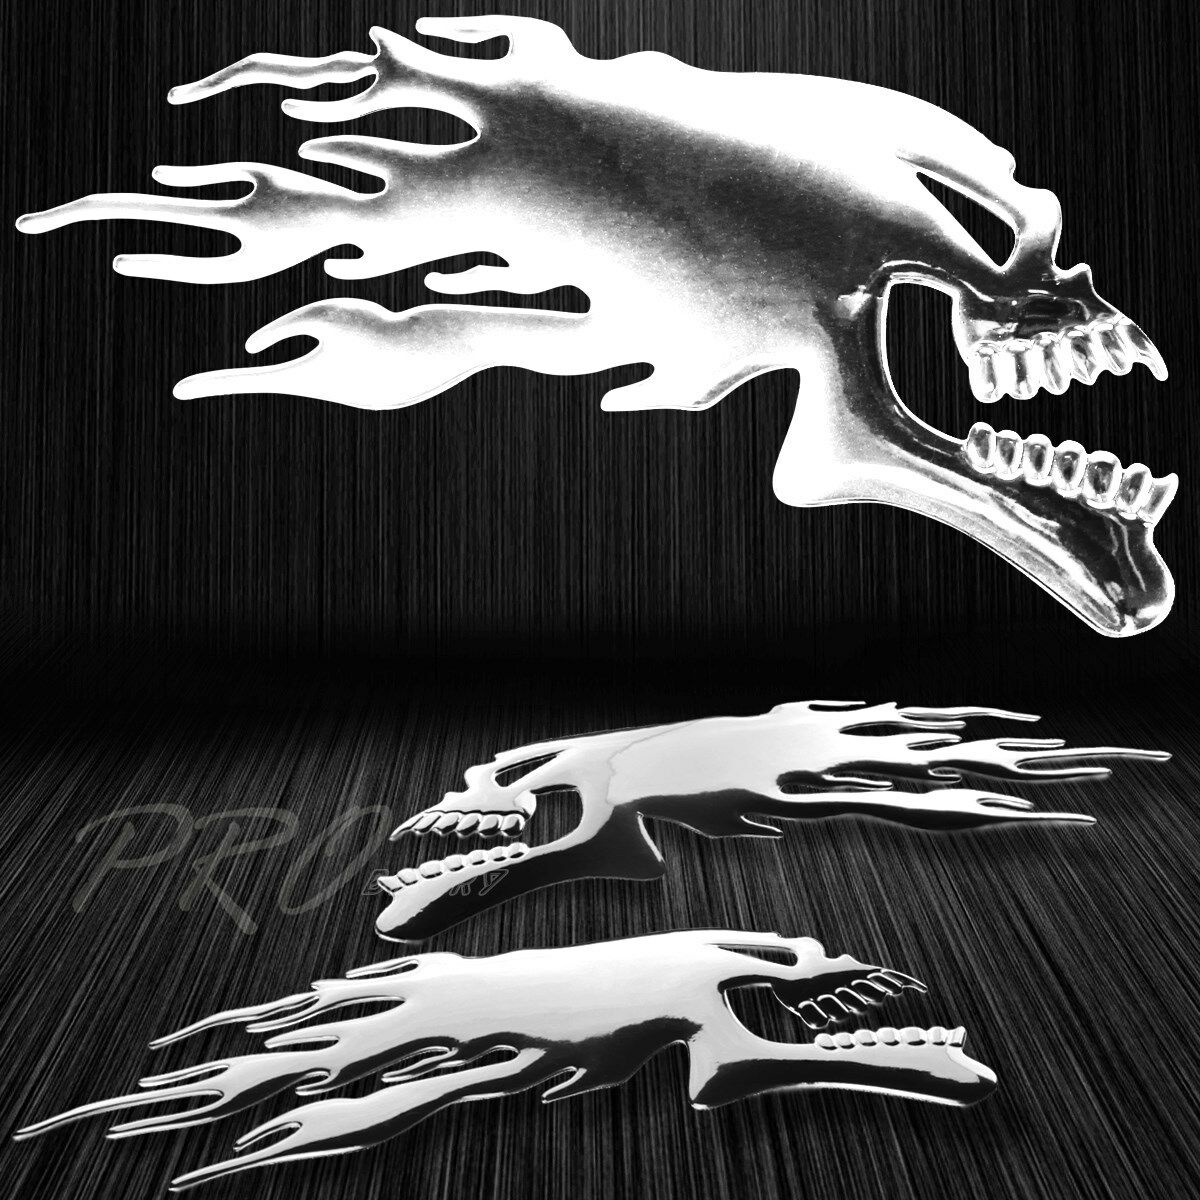 Details about 2x 6x 2 1 4 3d abs emblem decal logo glossy sticker fire skull skeleton chrome